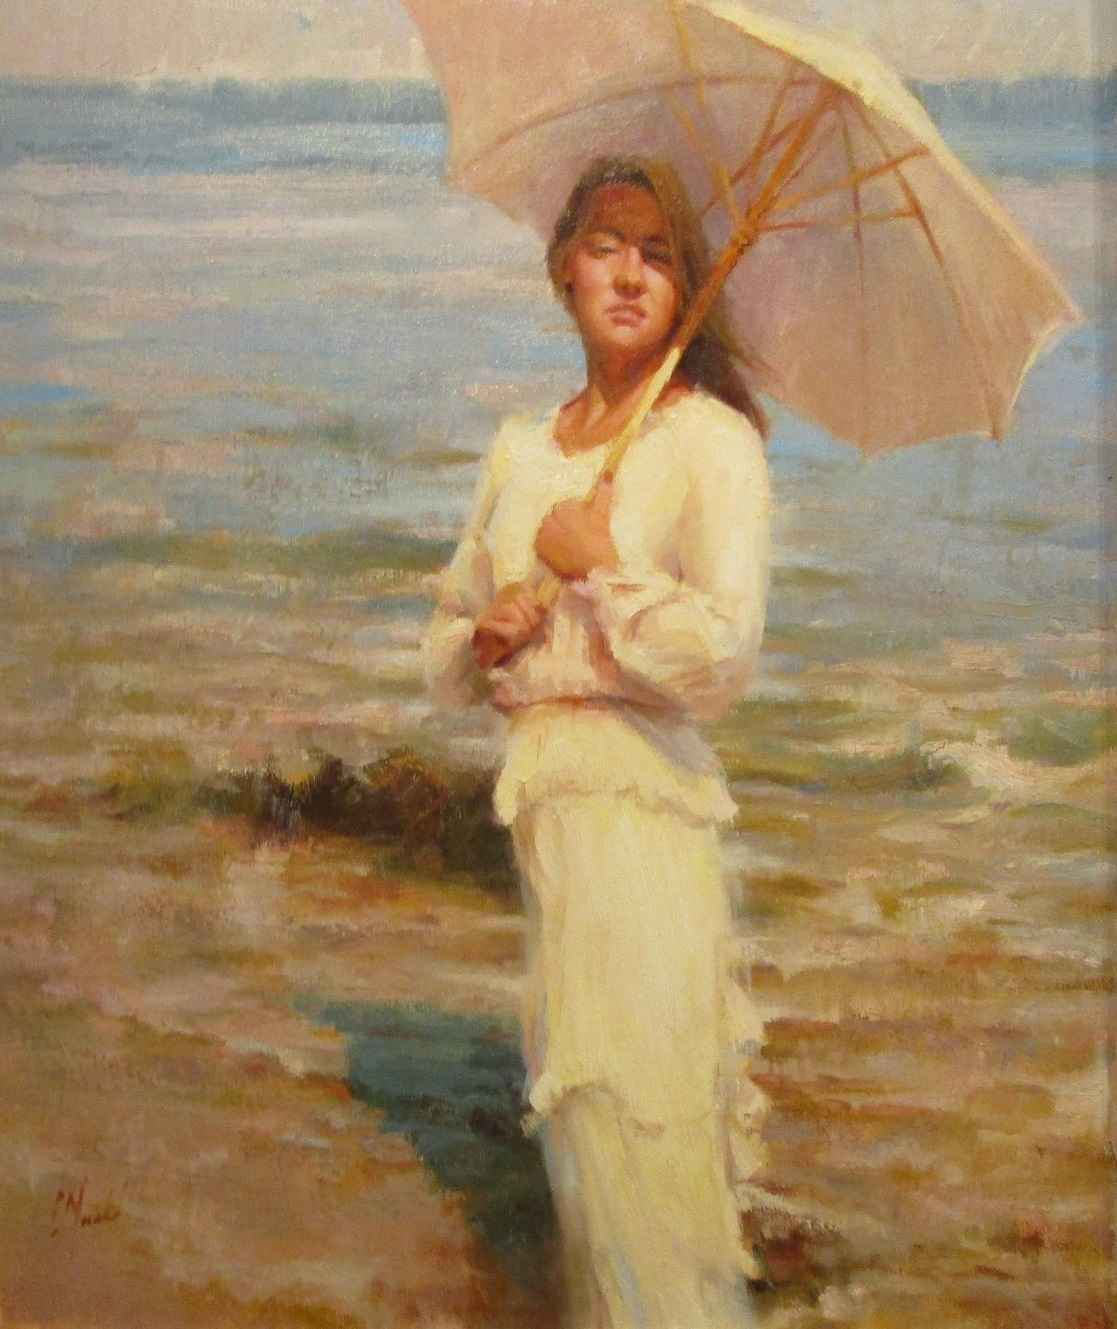 White Parasol by  Chuck Marshall - Masterpiece Online